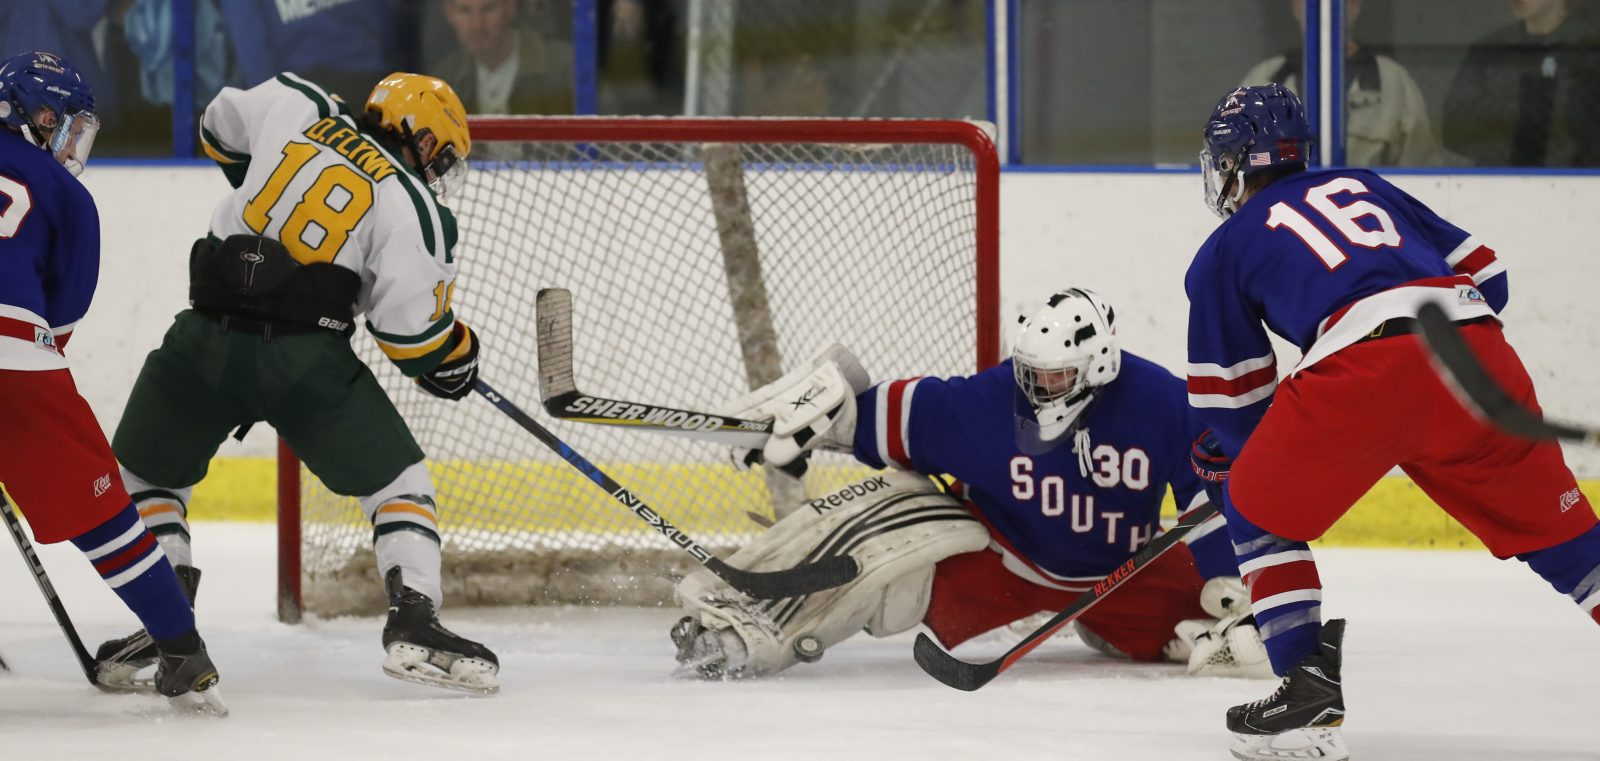 West Seneca East's Daniel Flynn is stopped by Williamsville South's Jake Kantor during second period action at Northtown Center Friday. (Harry Scull Jr./Buffalo News)